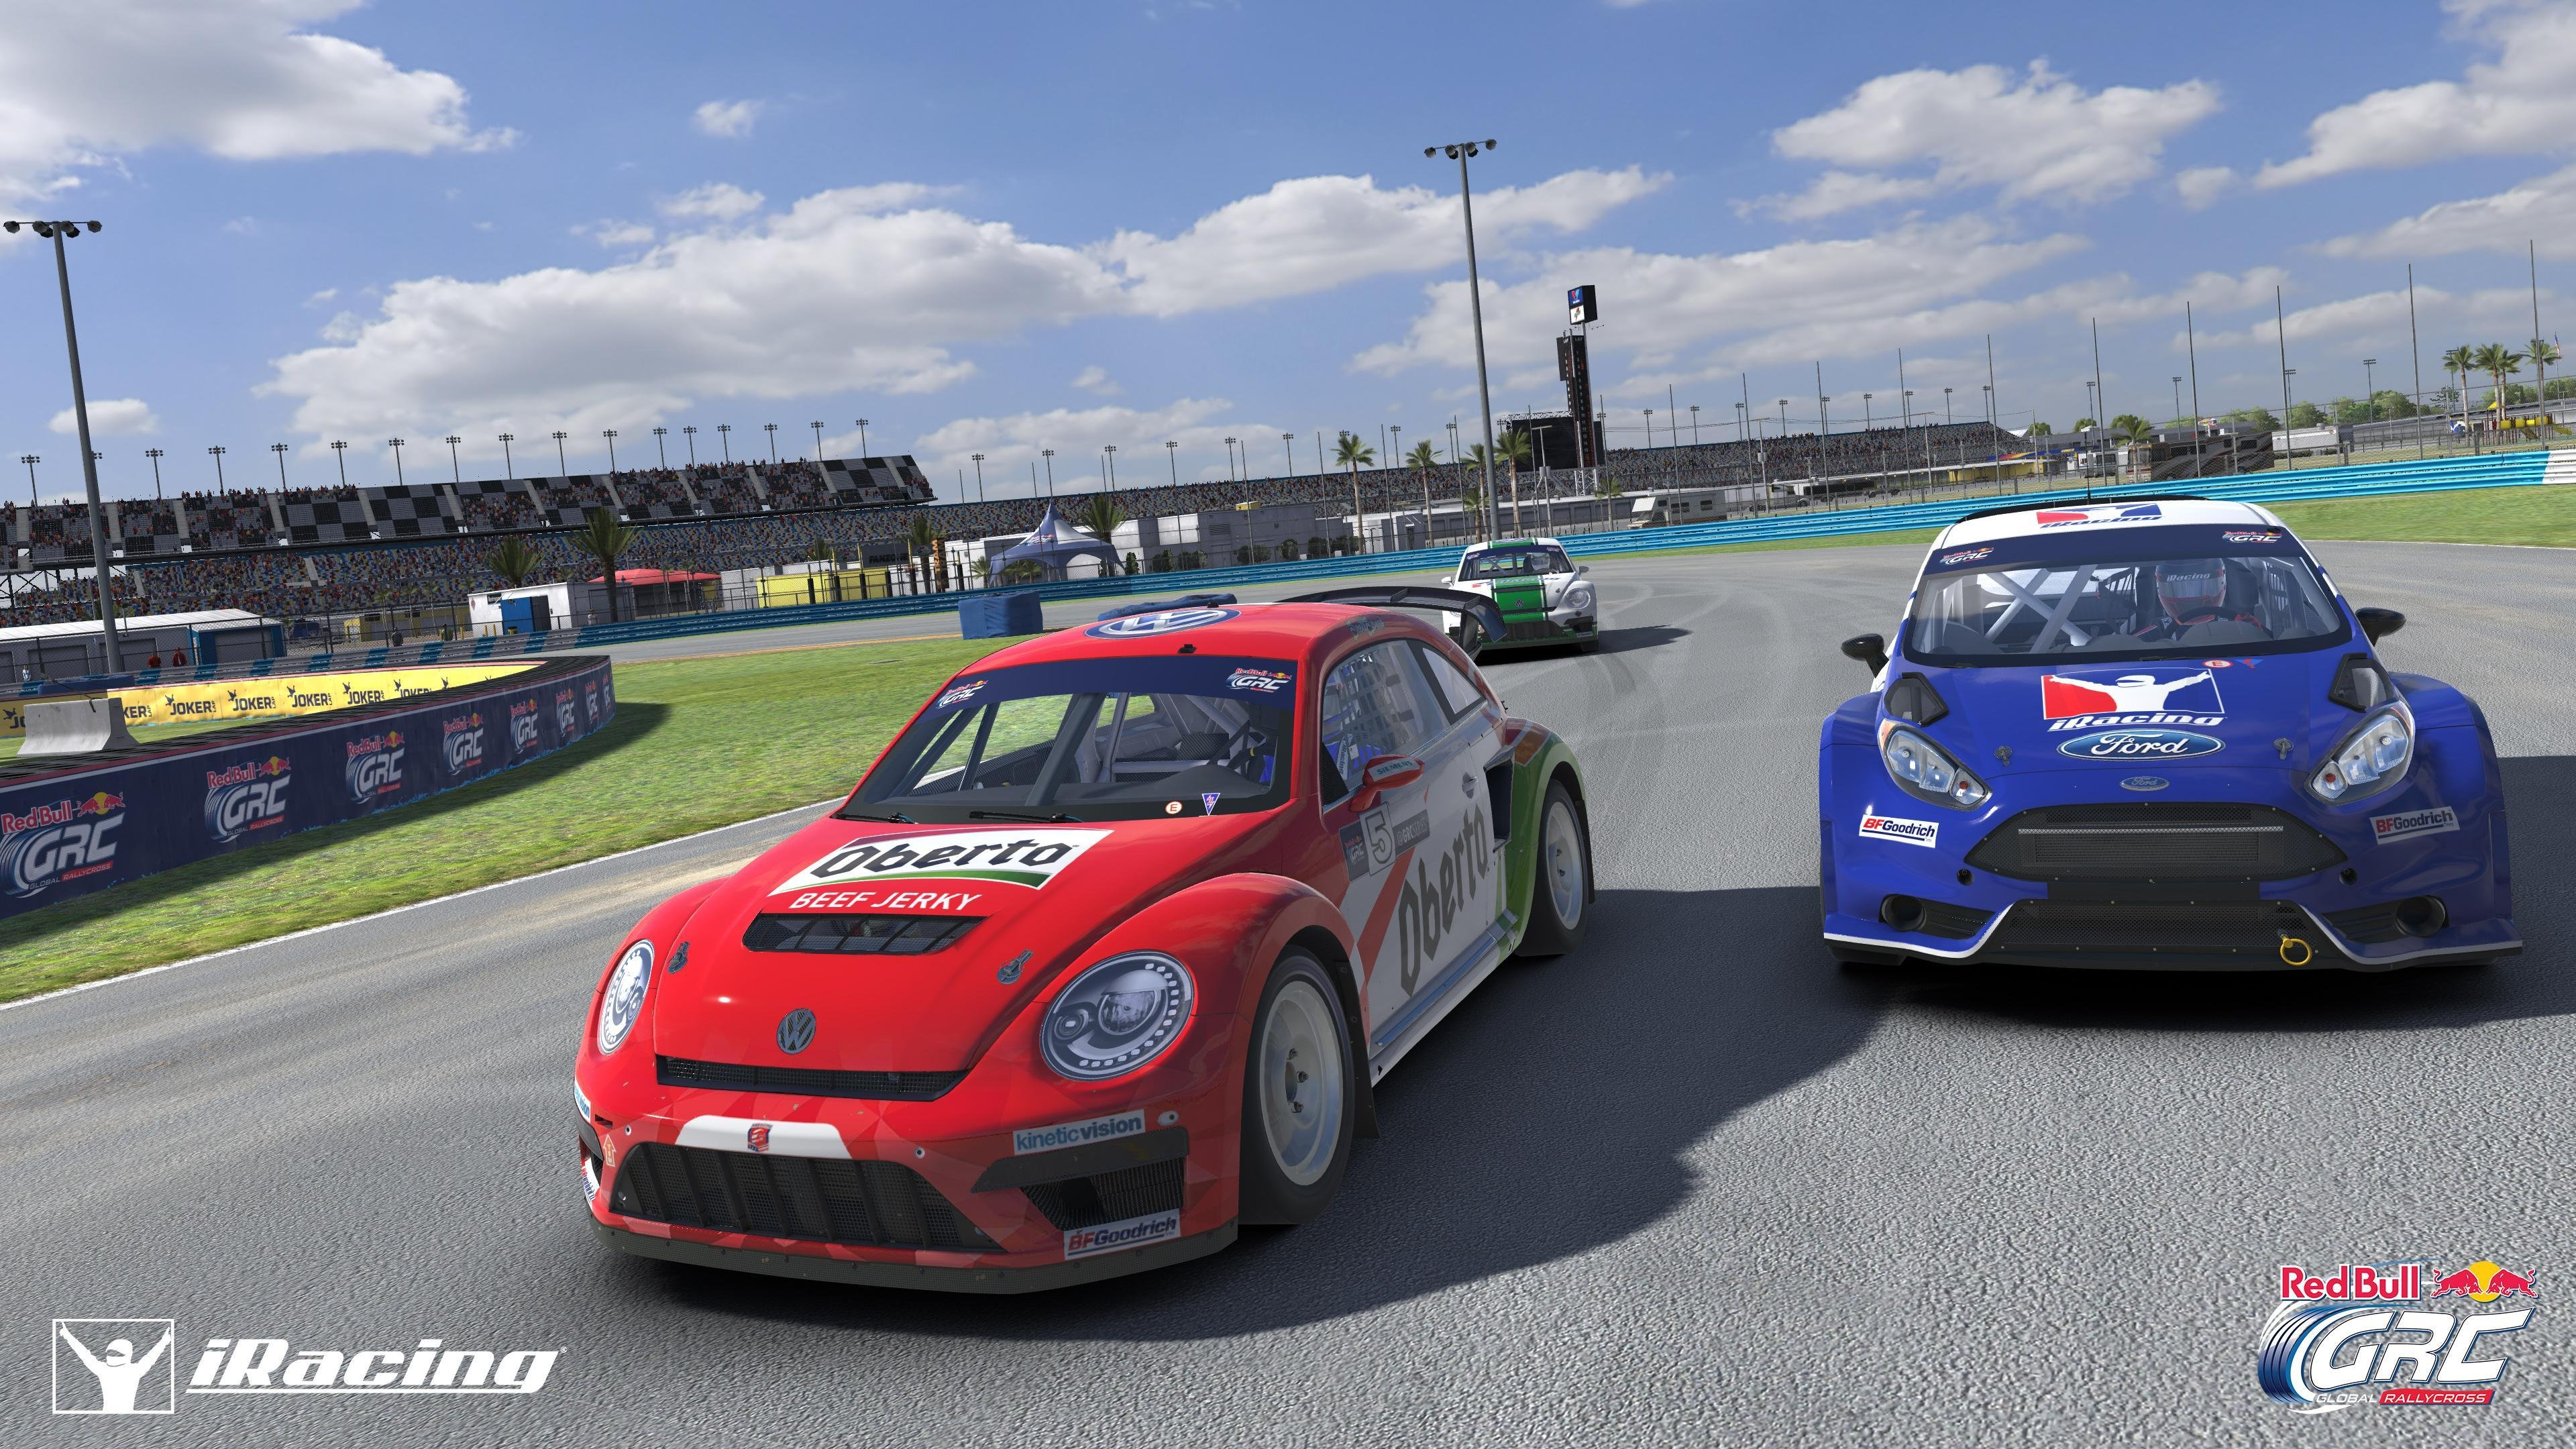 Best PC racing game: iRacing